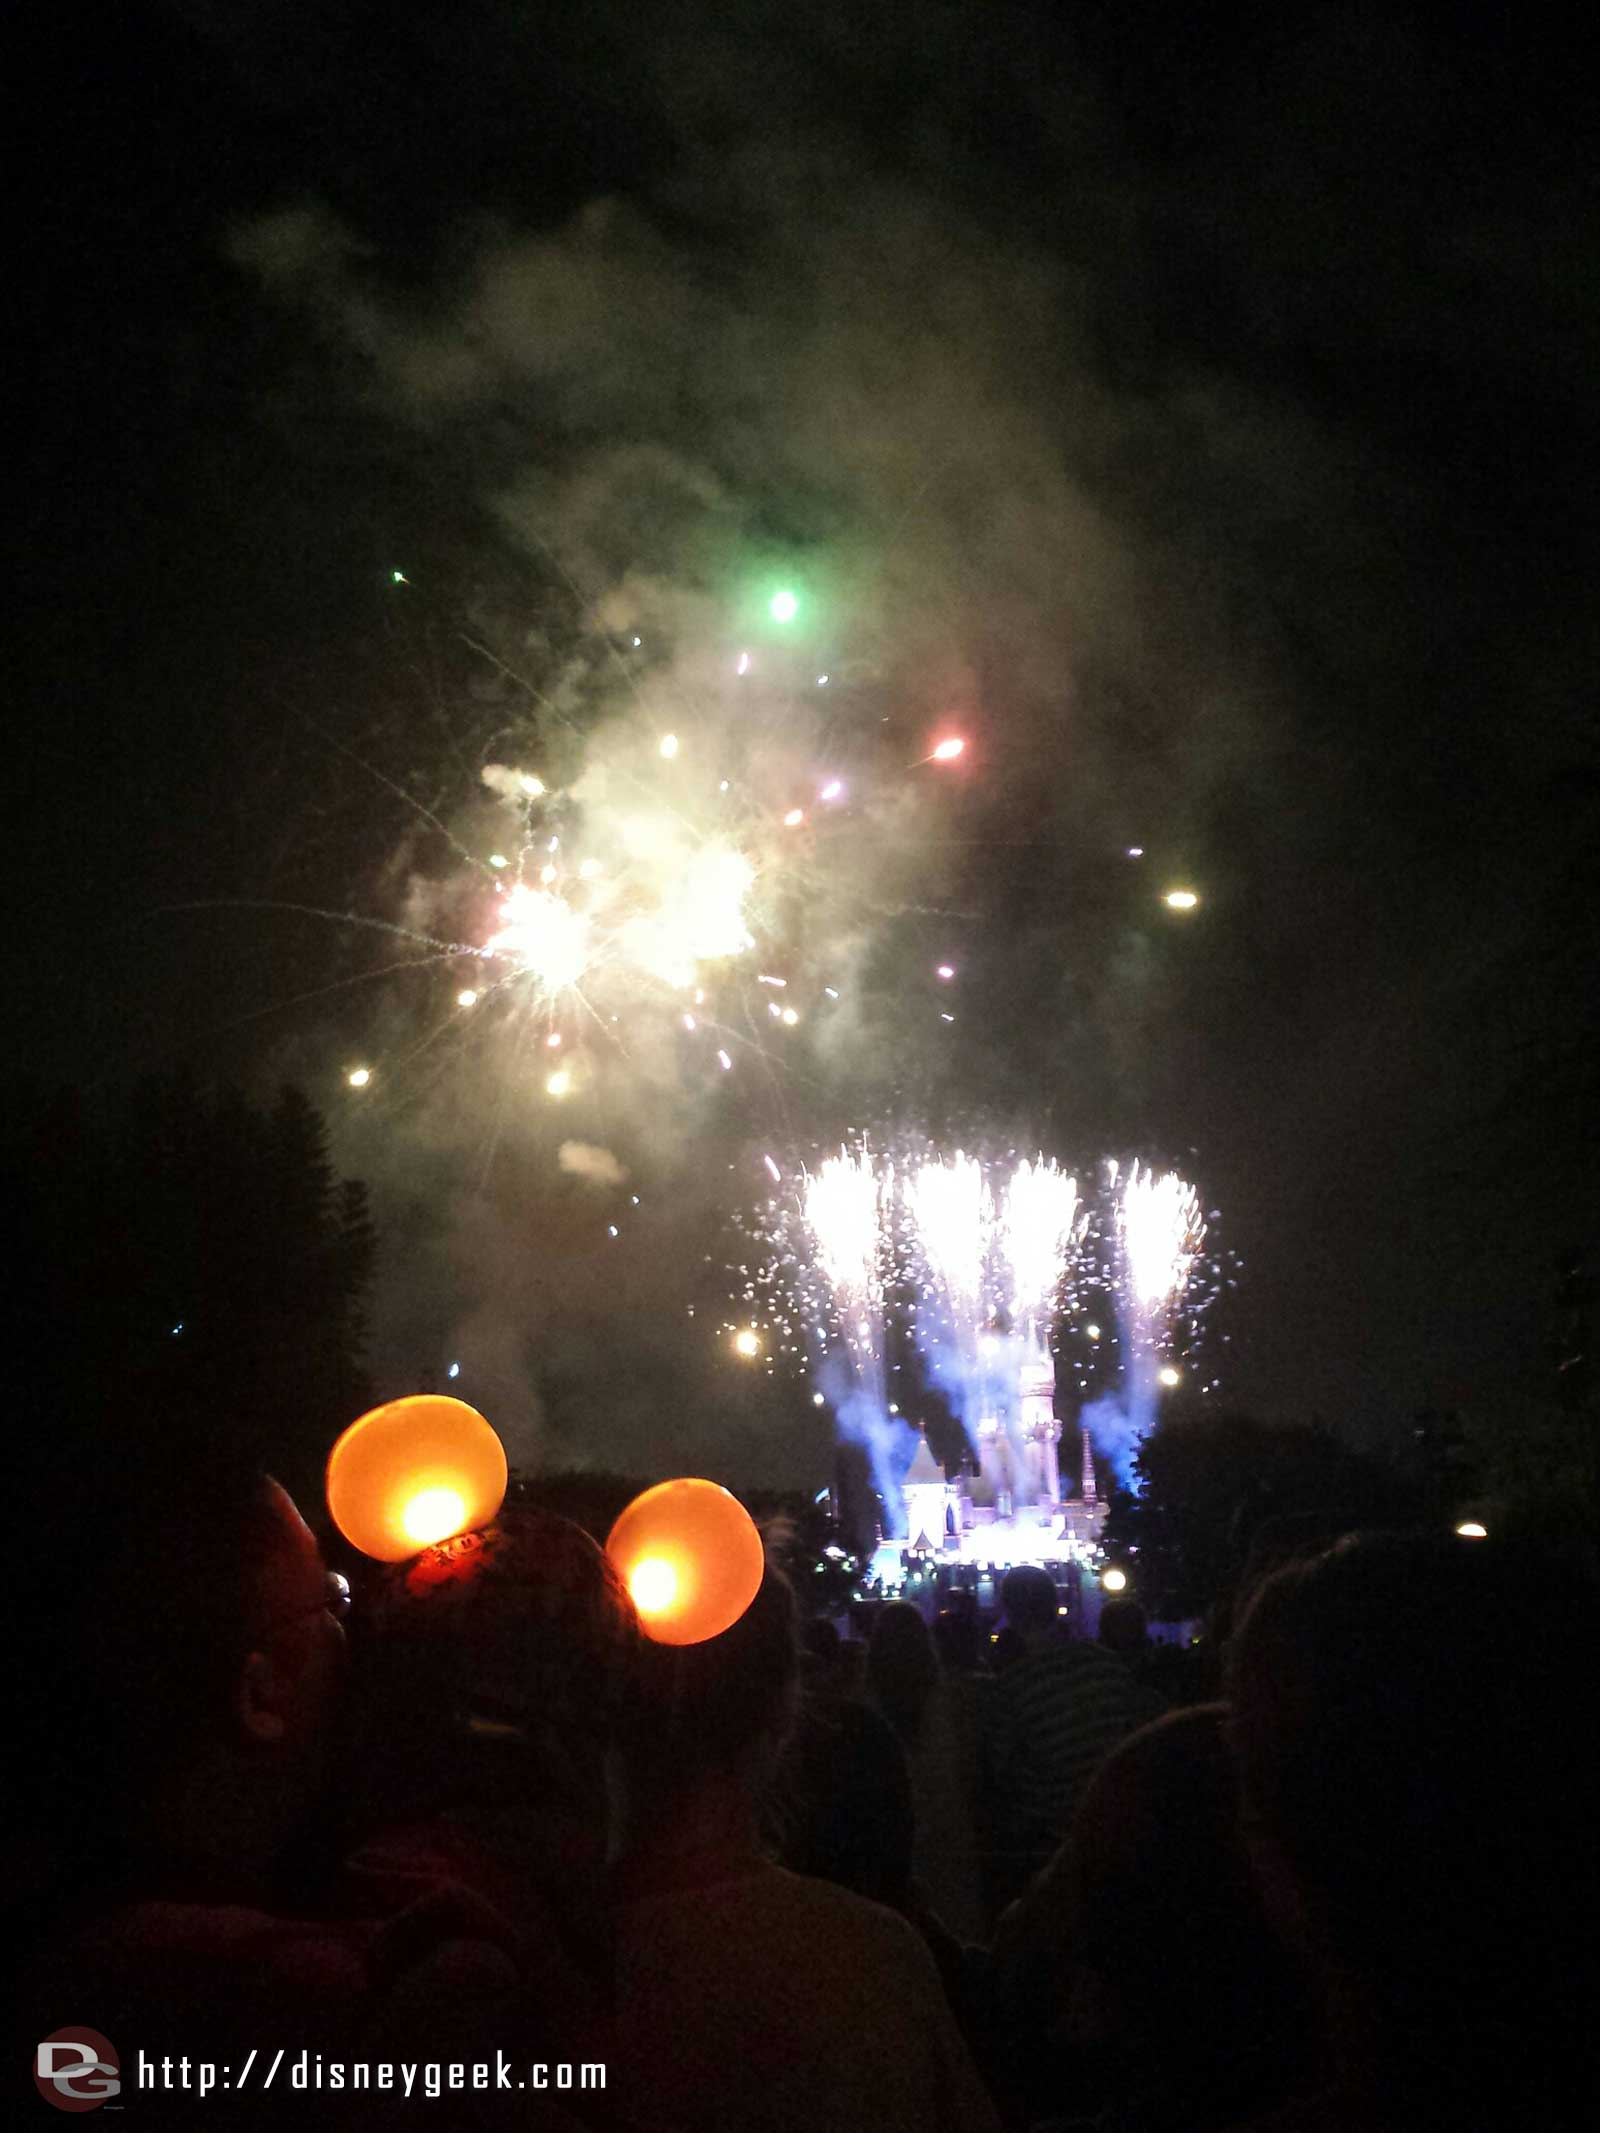 No Dumbo either but did see a couple pairs of glow with the show ears